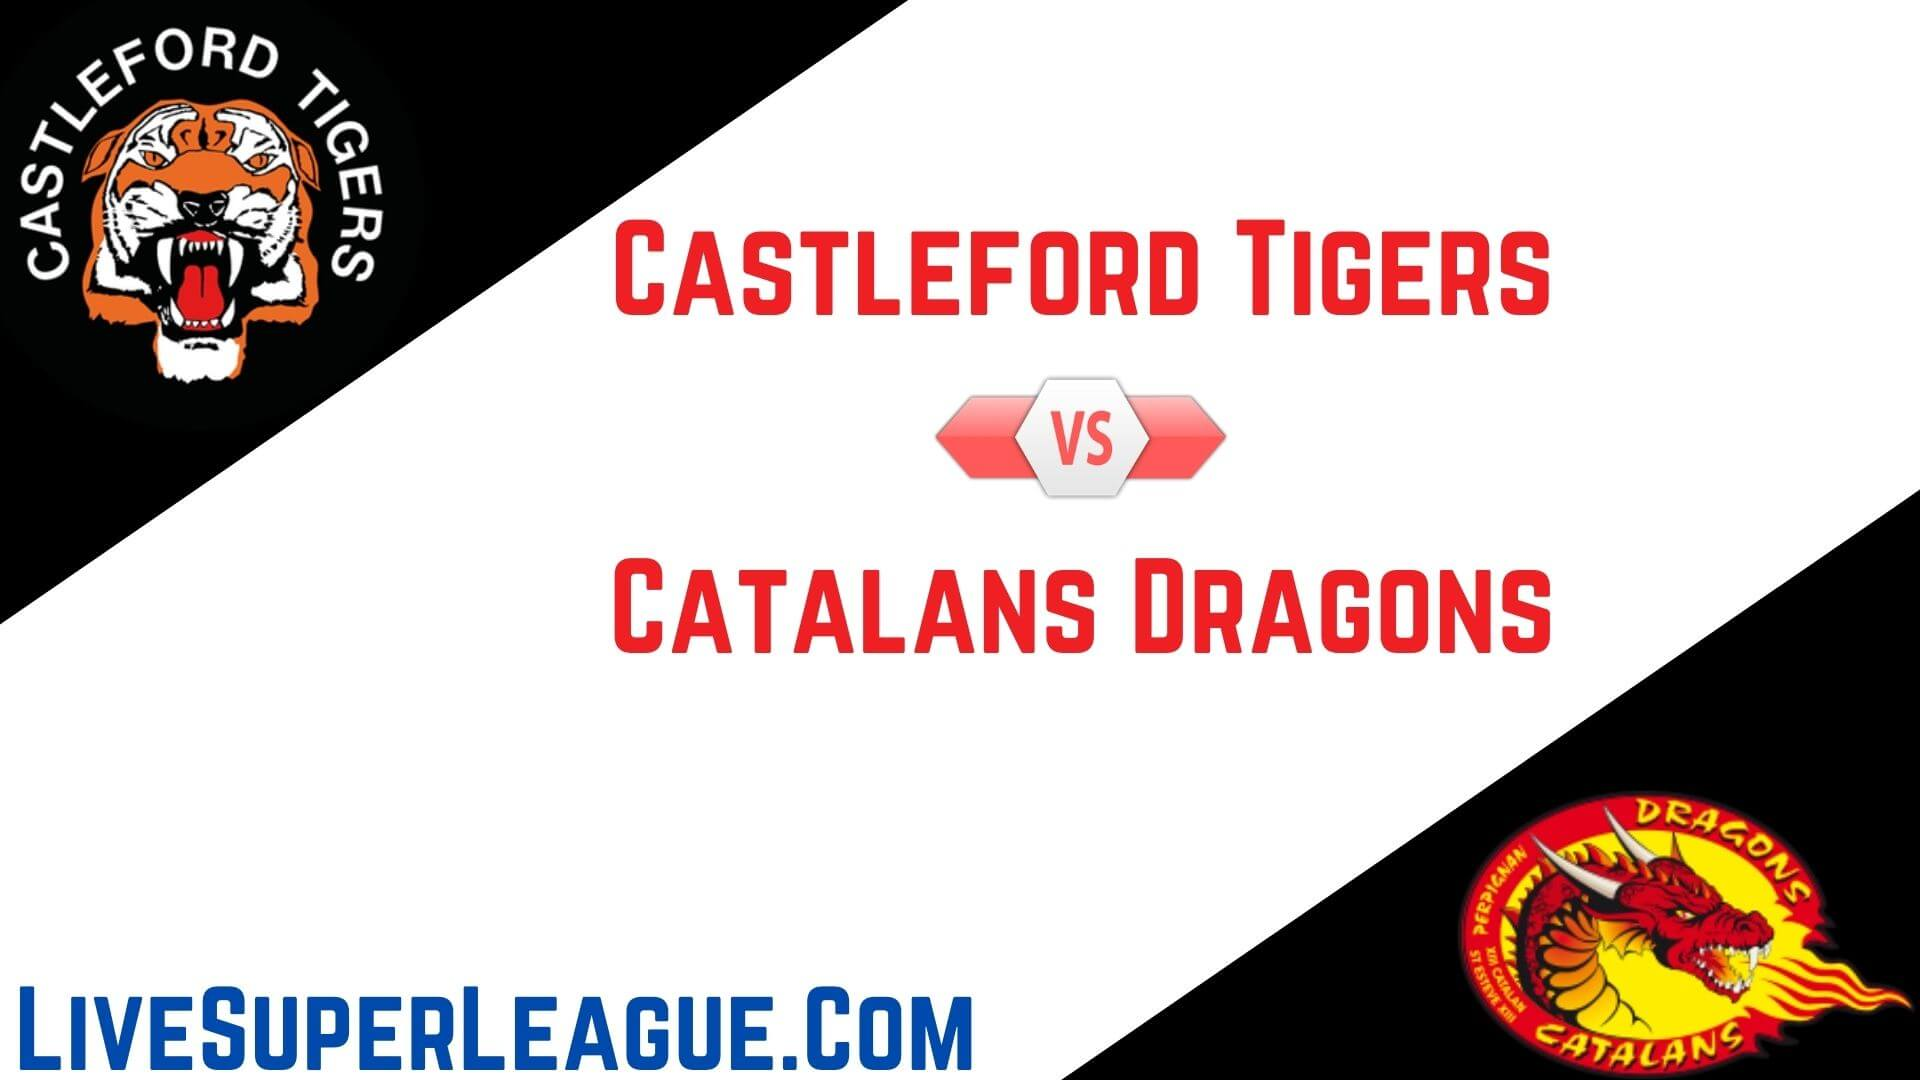 watch-catalans-dragons-vs-castleford-tigers-live